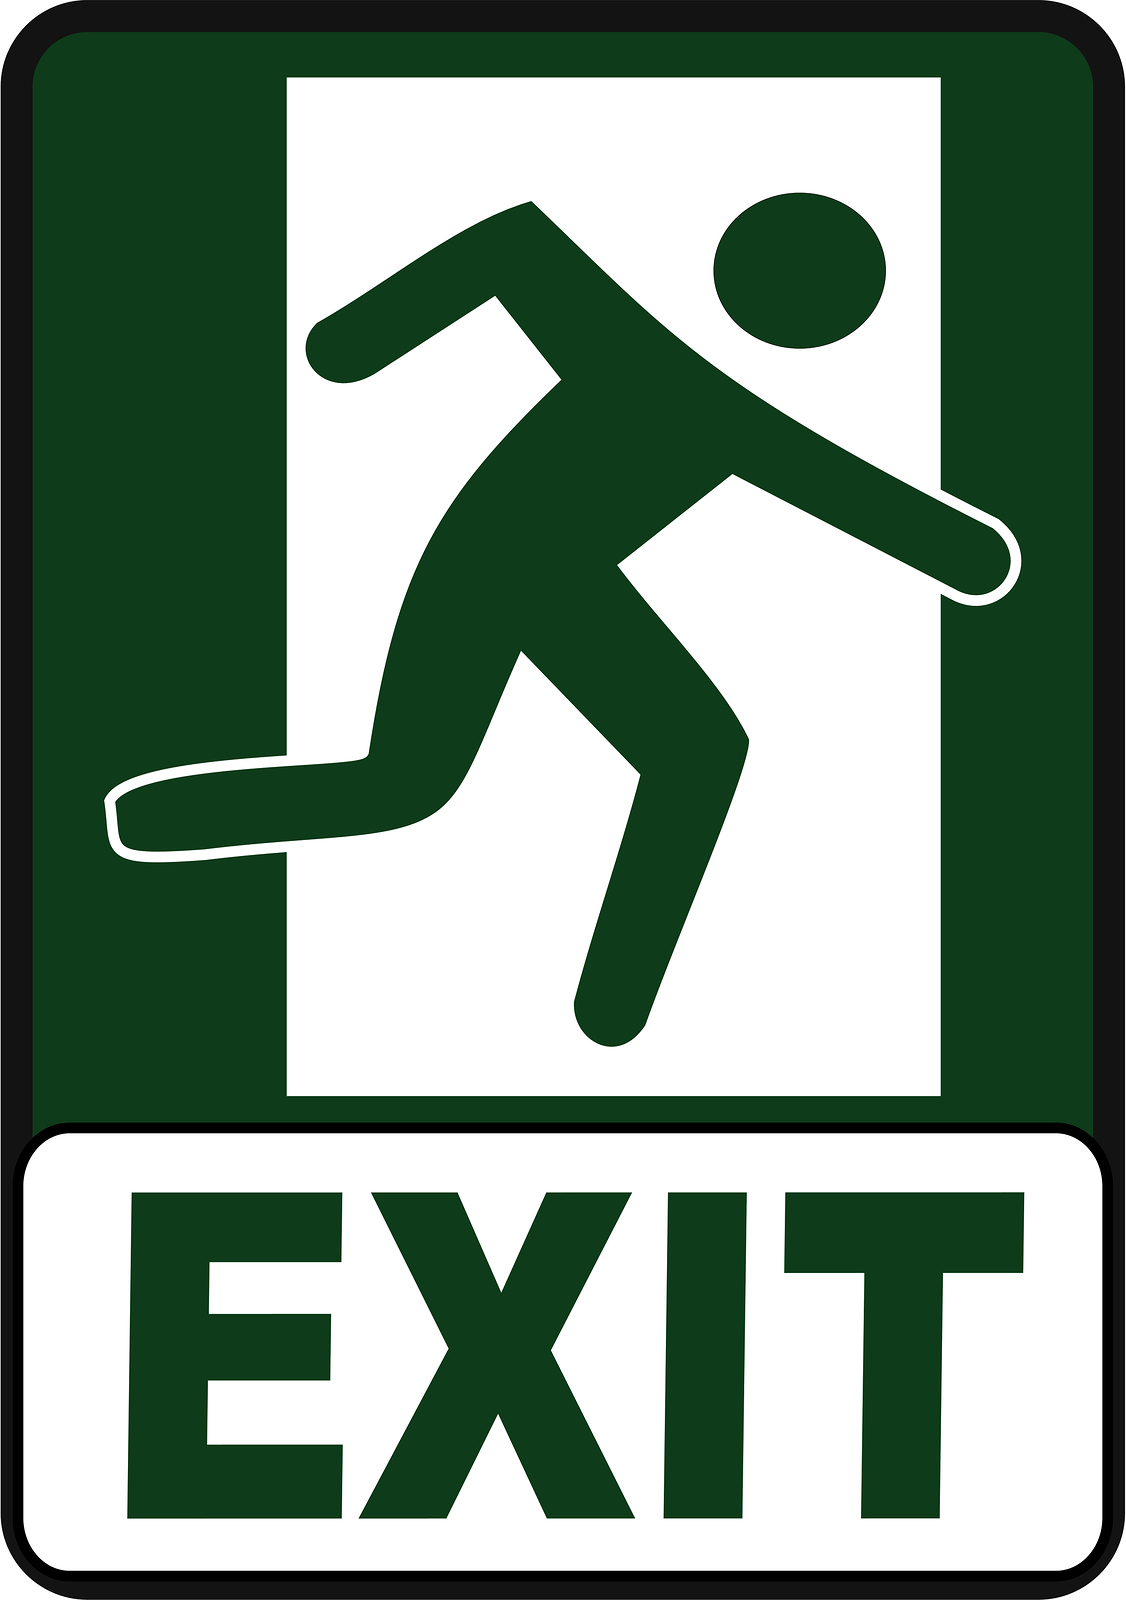 Exit Sign Clipart - Clipart Kid